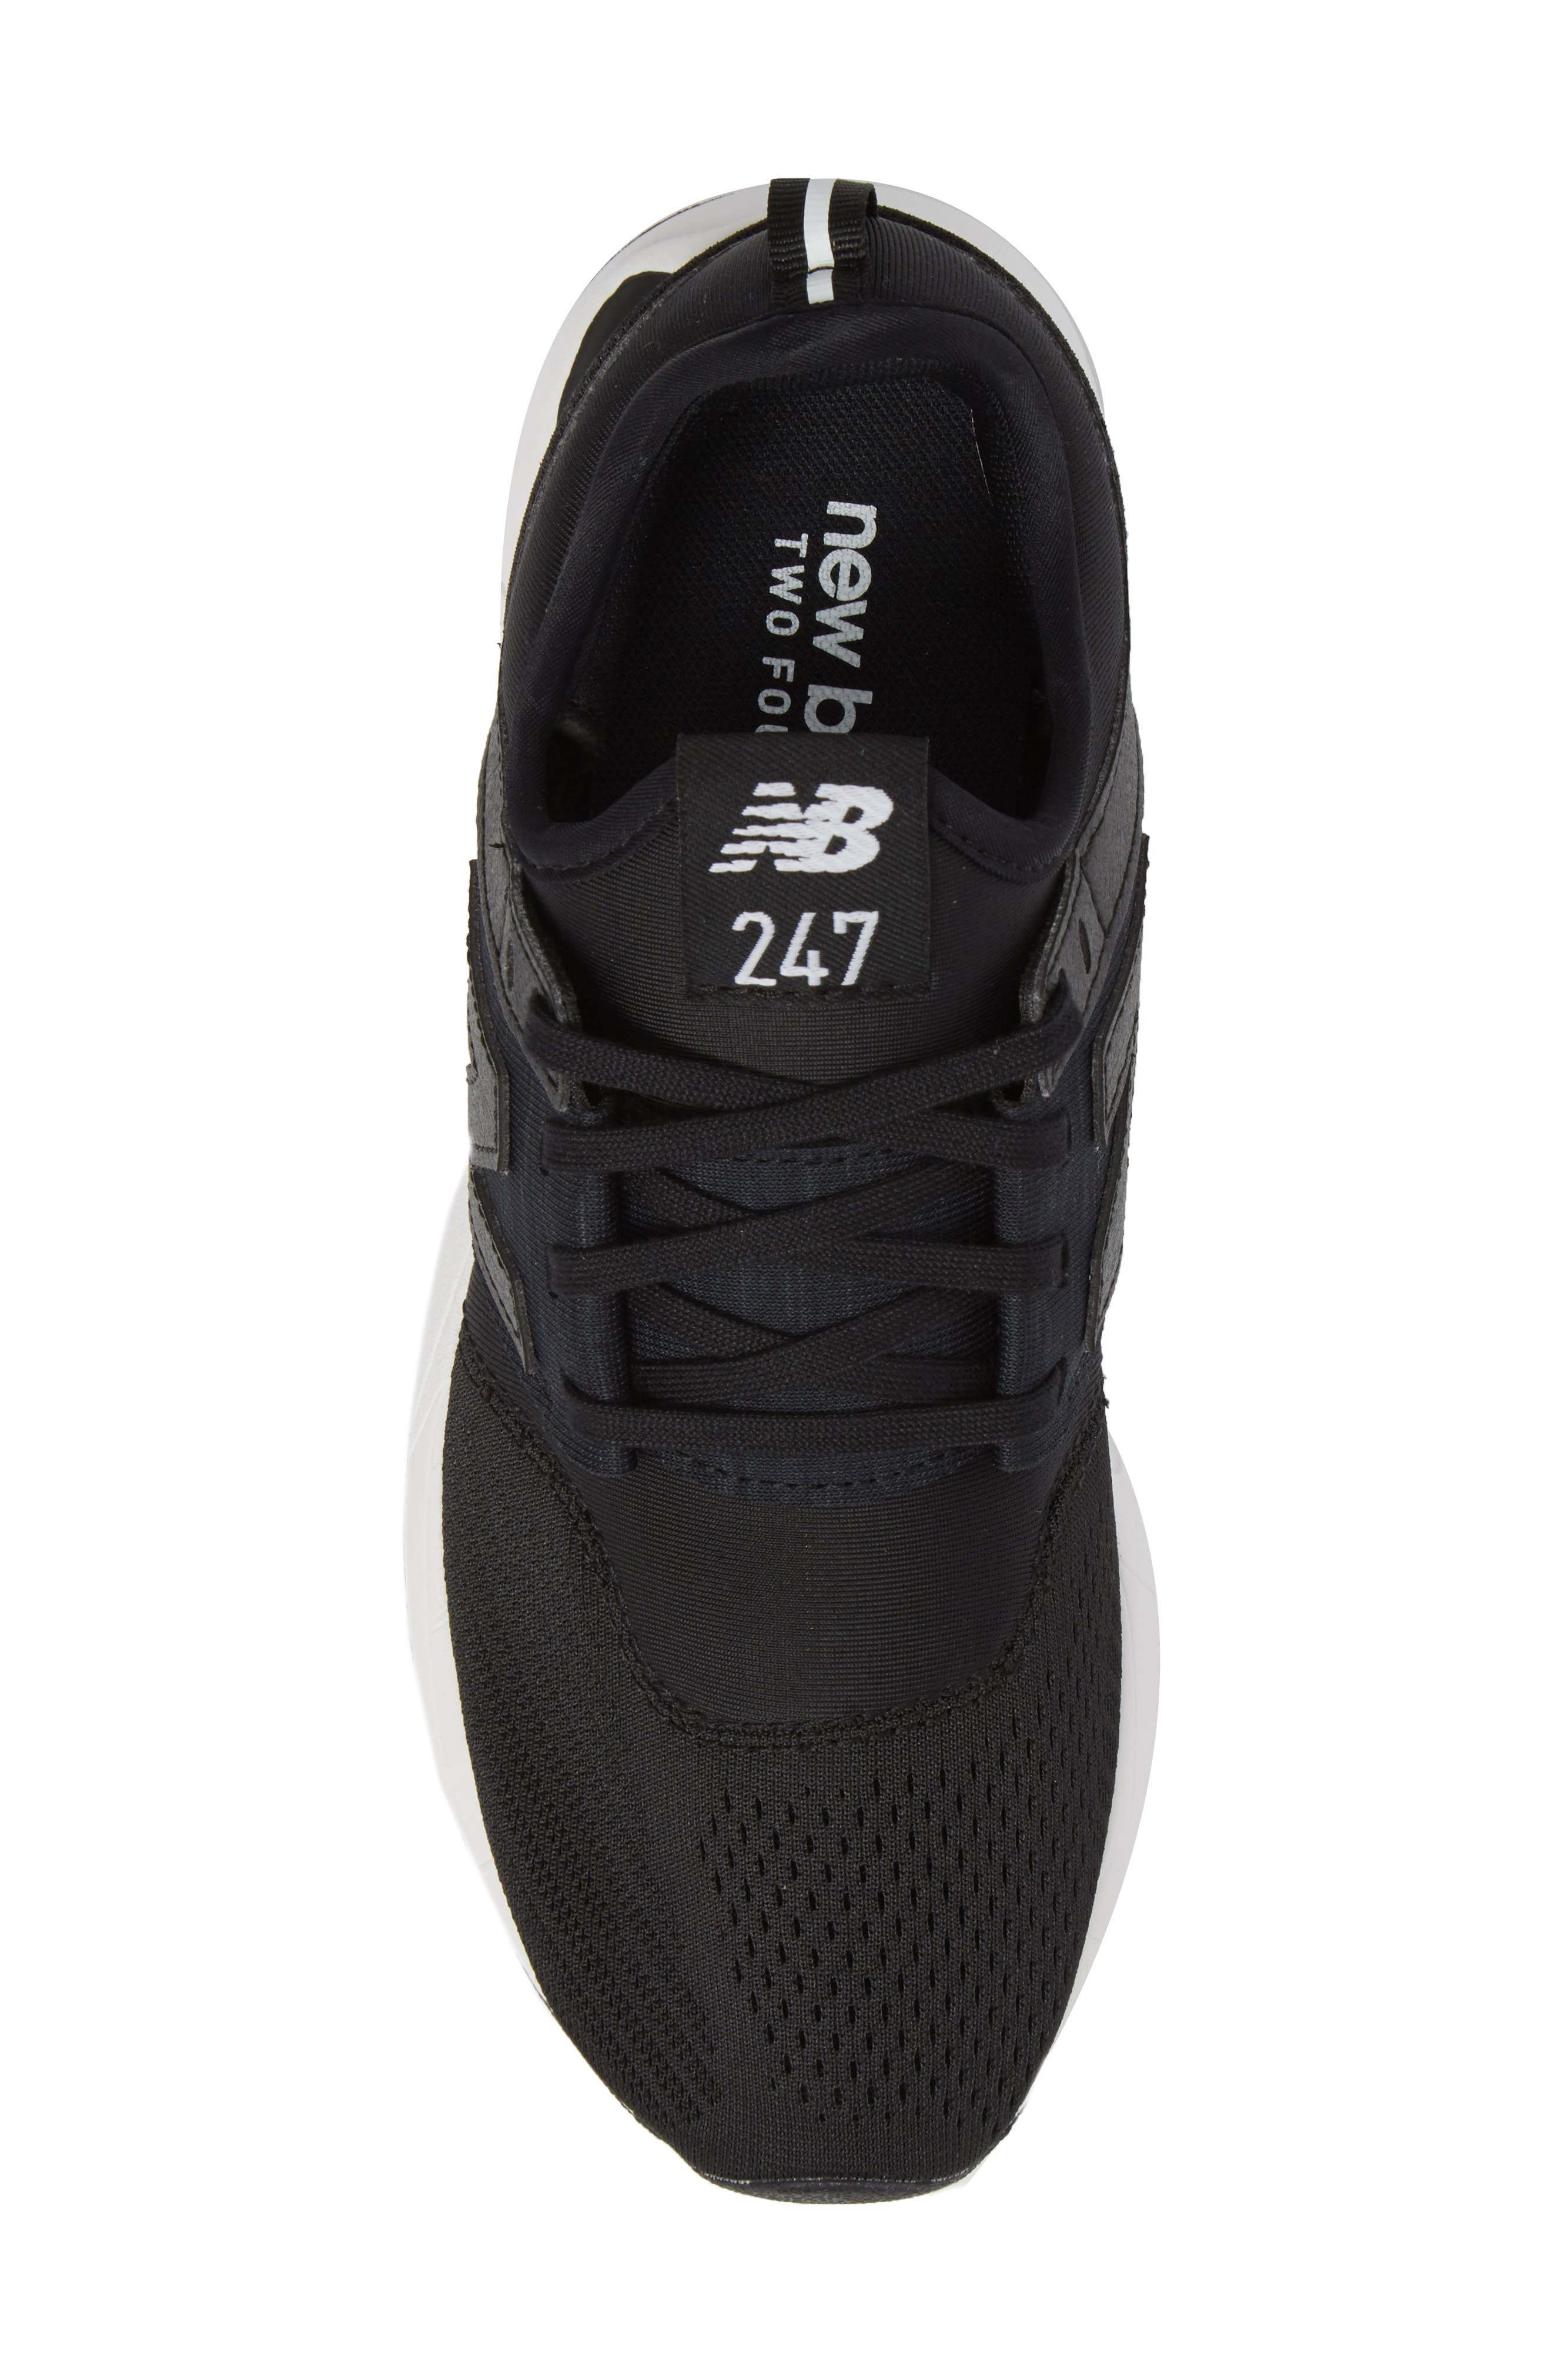 247 Classic Sneaker,                             Alternate thumbnail 5, color,                             001